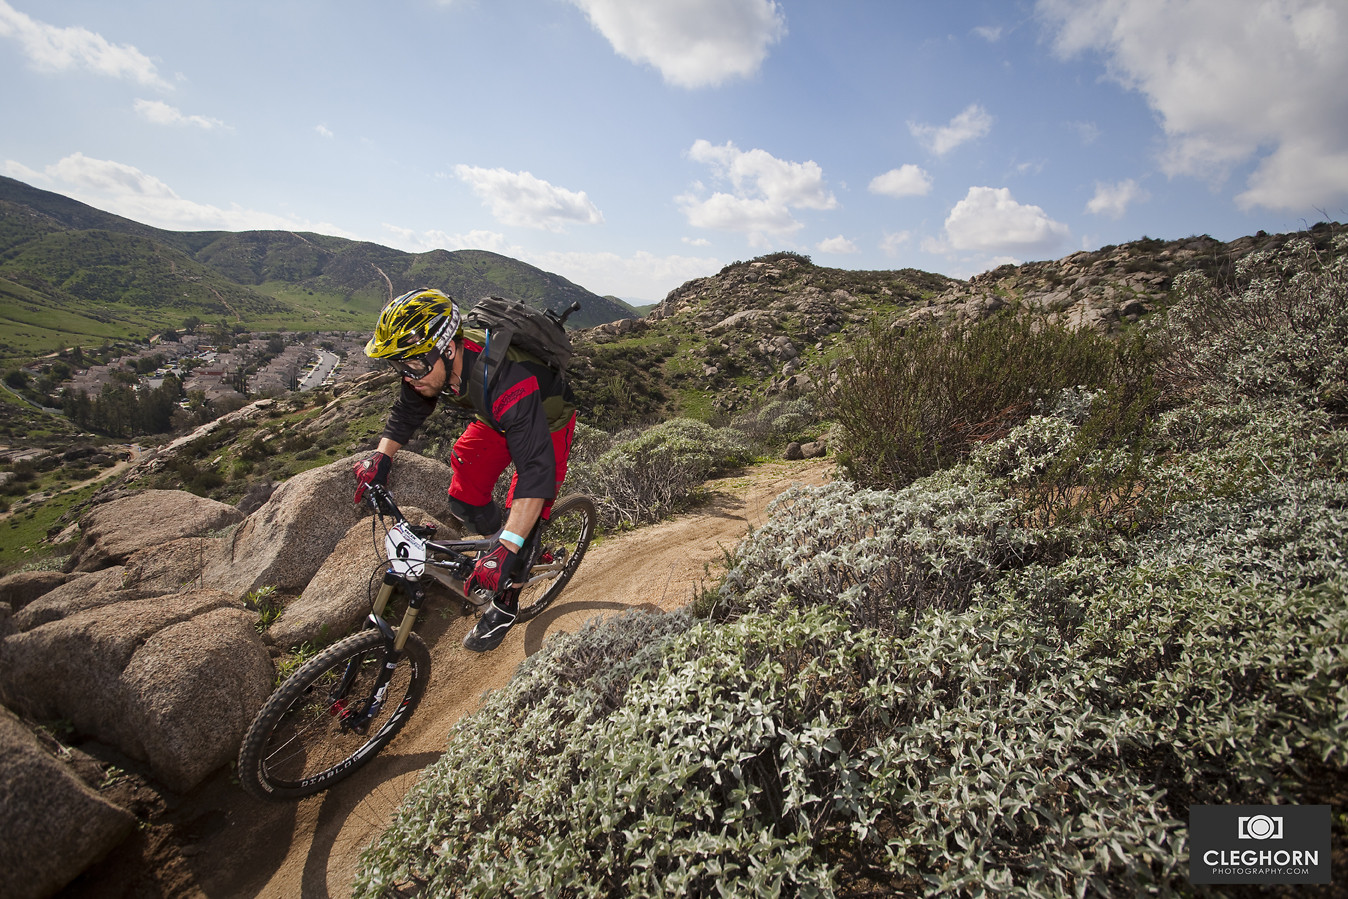 Practice runs with Eric Carter - Cleghorn Photography - Mountain Biking Pictures - Vital MTB